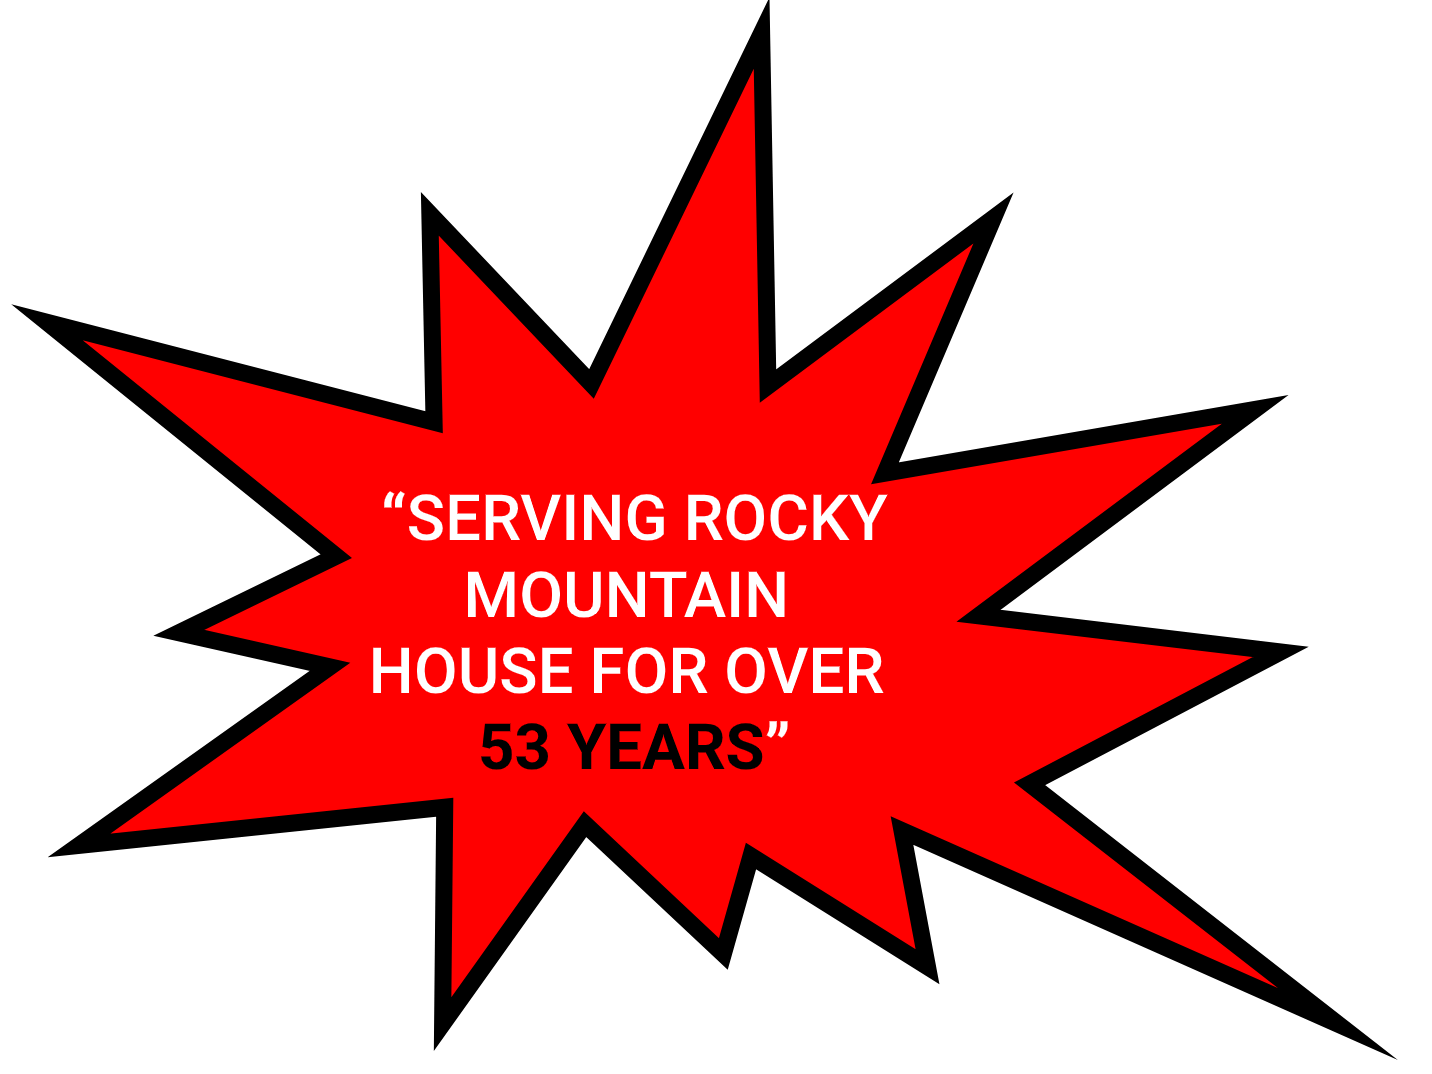 serving rocky mountain house for over 53 years